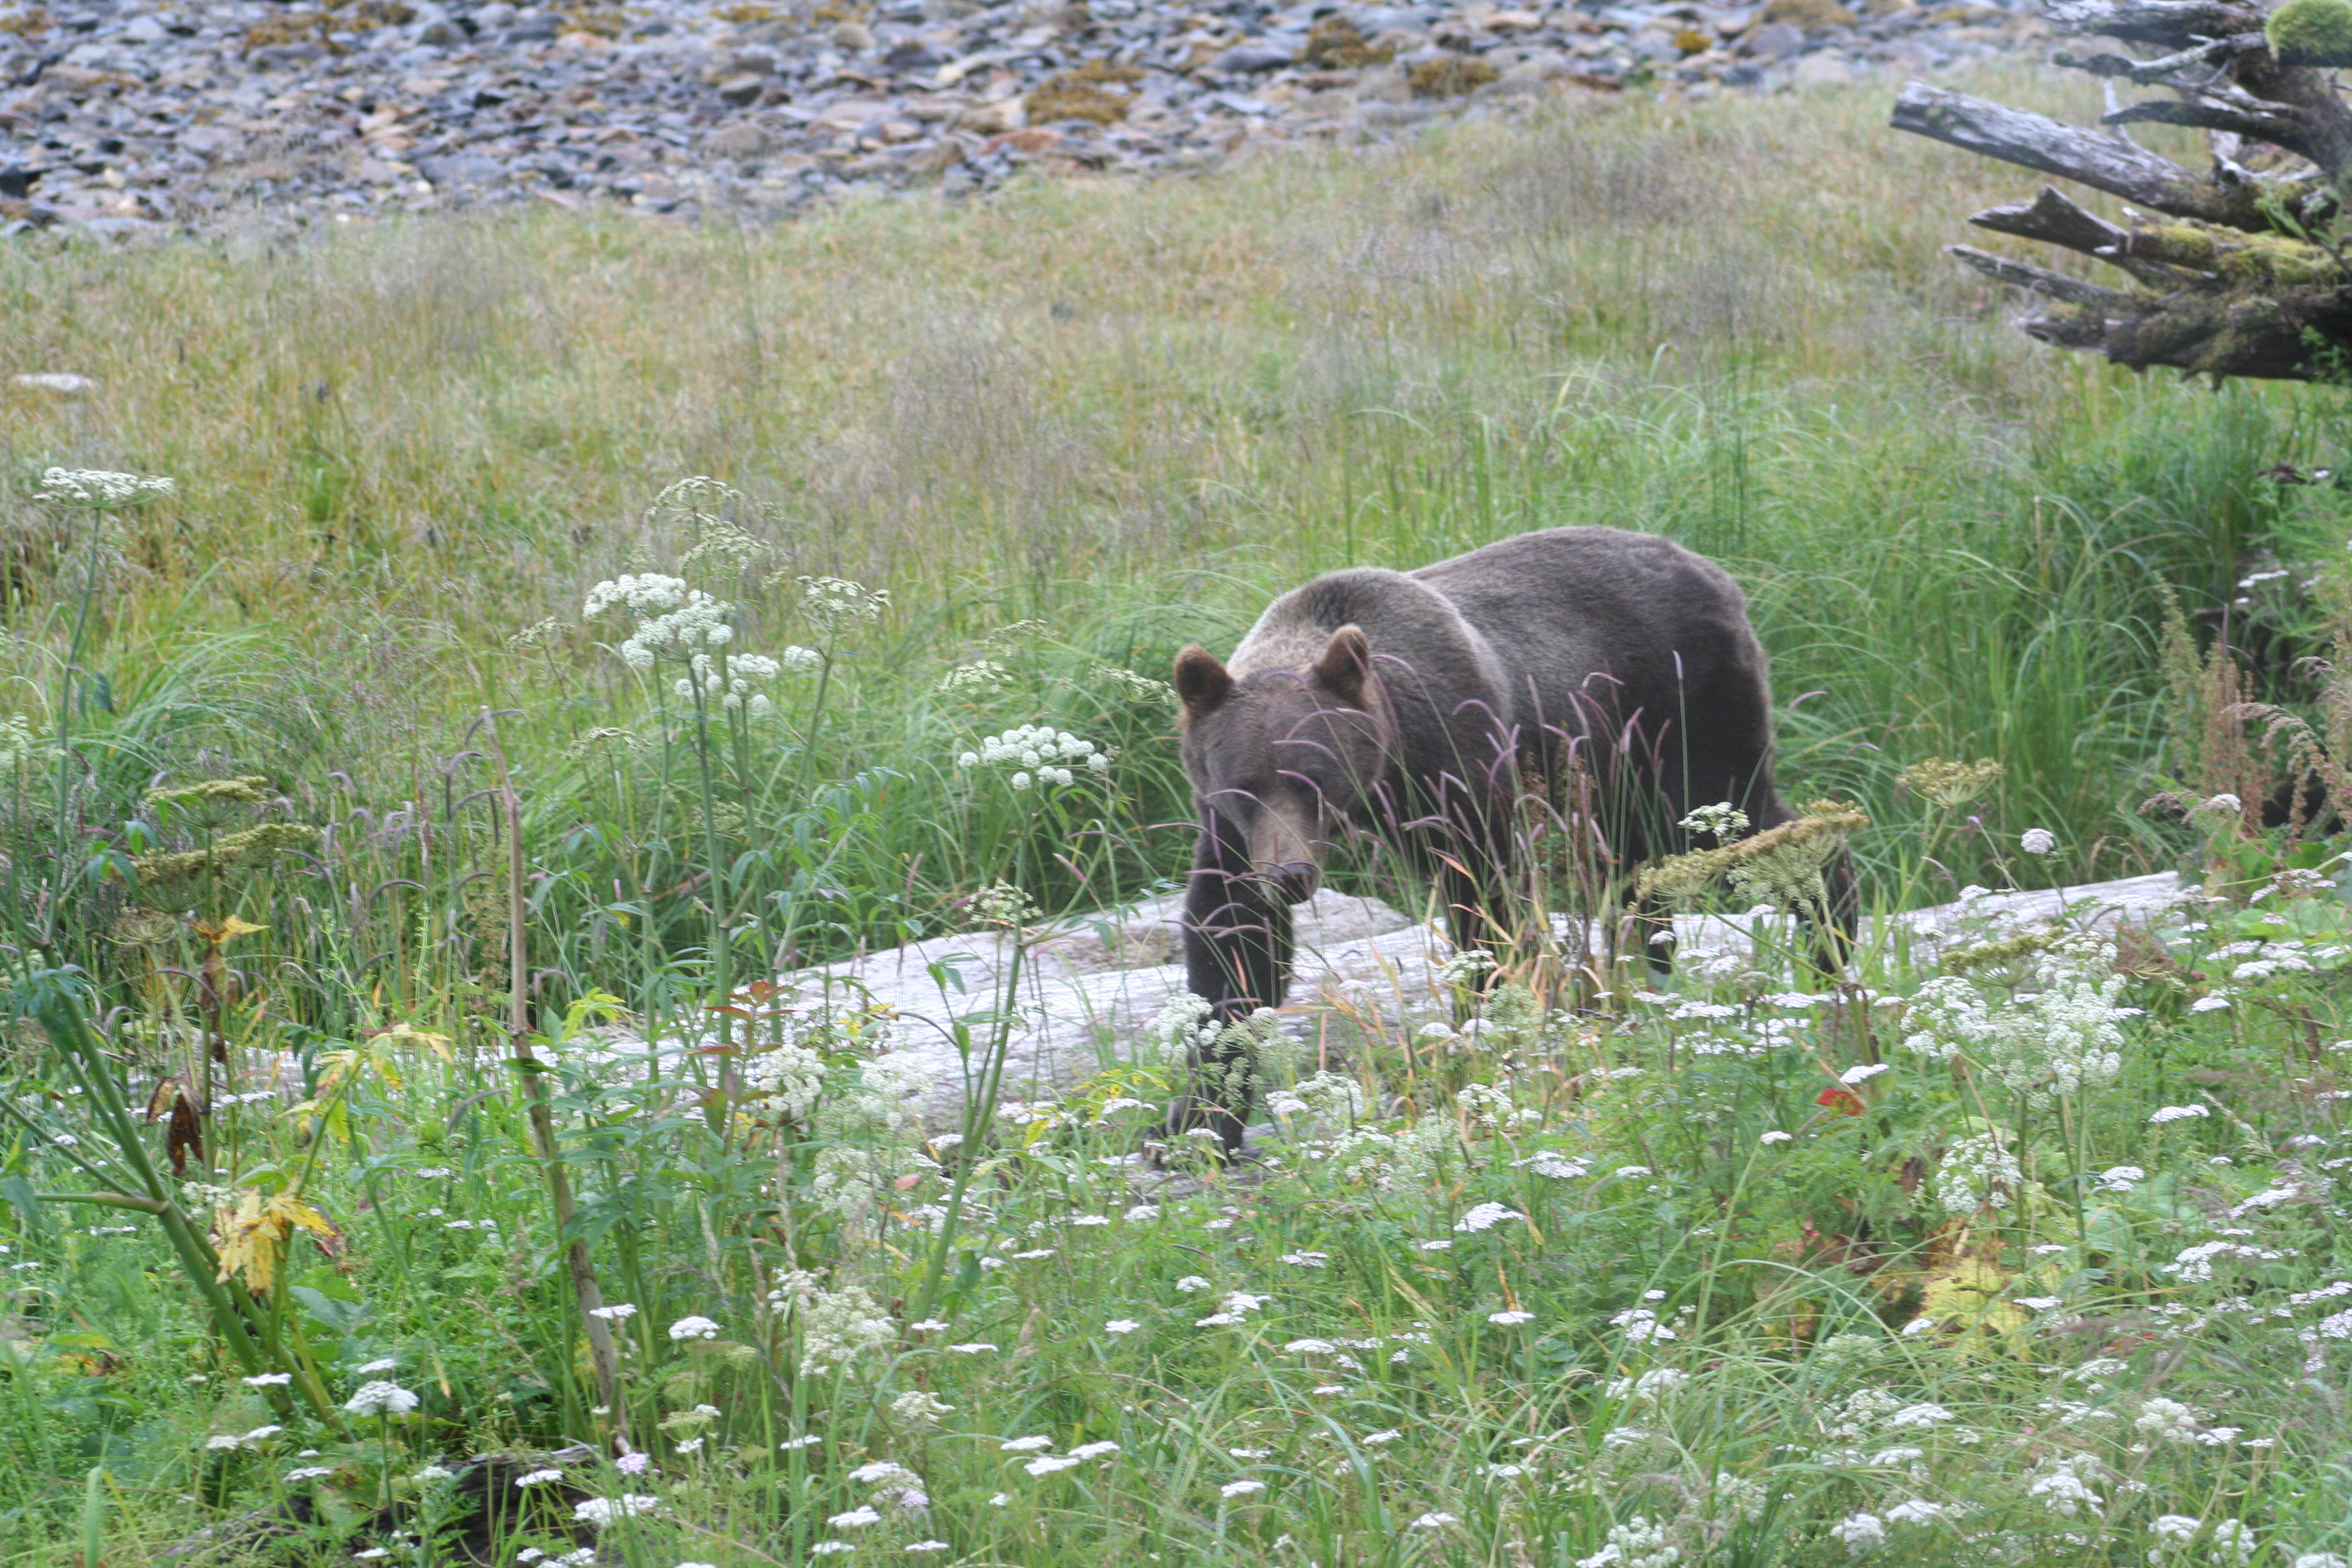 Brown bear, wolf encounters in and near Petersburg this summer